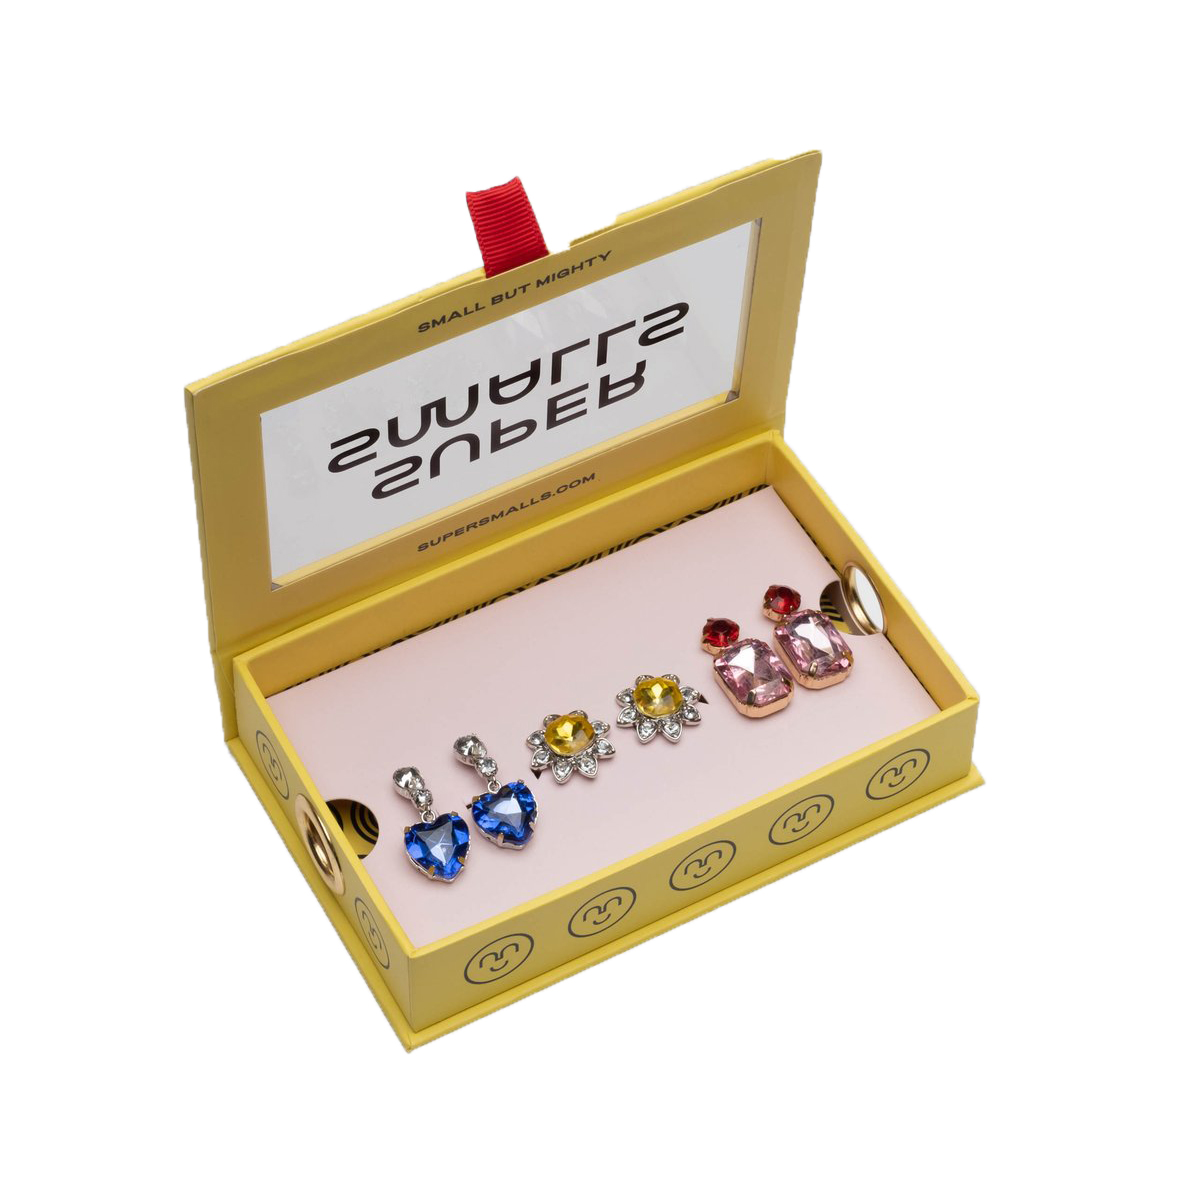 Gifts for kids - Super Smalls 'Dinner & a Movie' Clip-on Earring Set